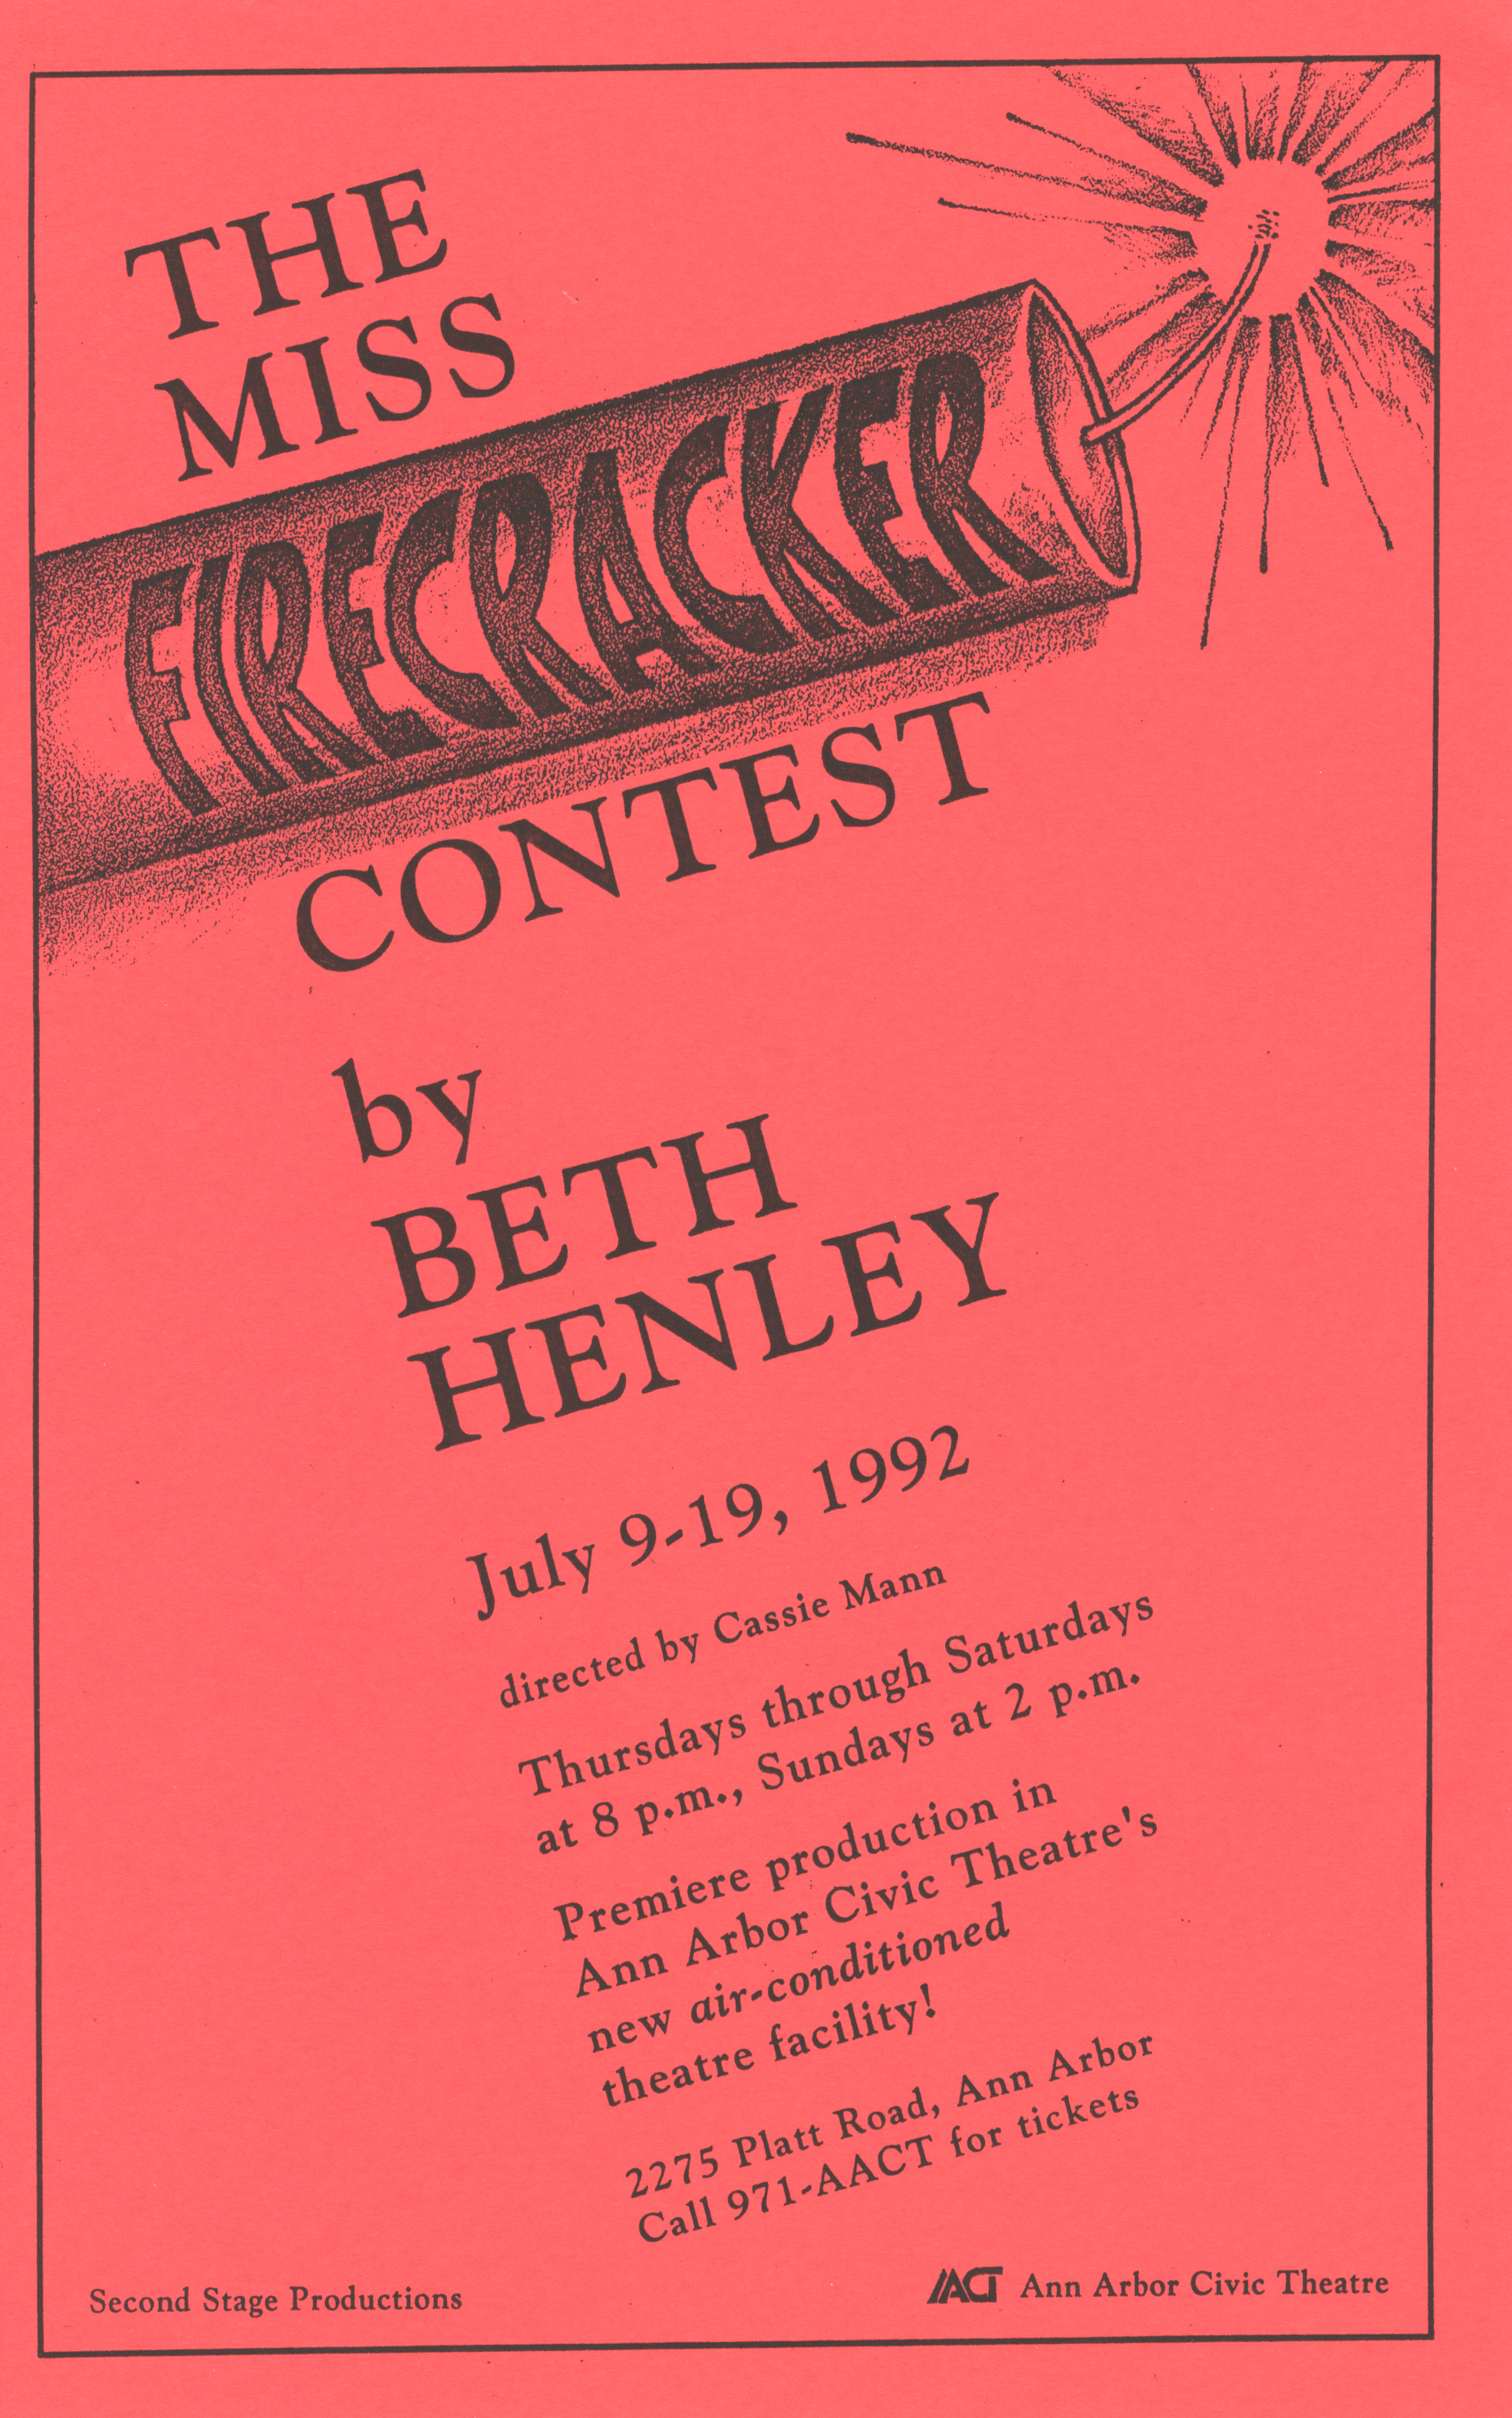 Ann Arbor Civic Theatre Program: The Miss Firecracker Contest, July 09, 1992 image